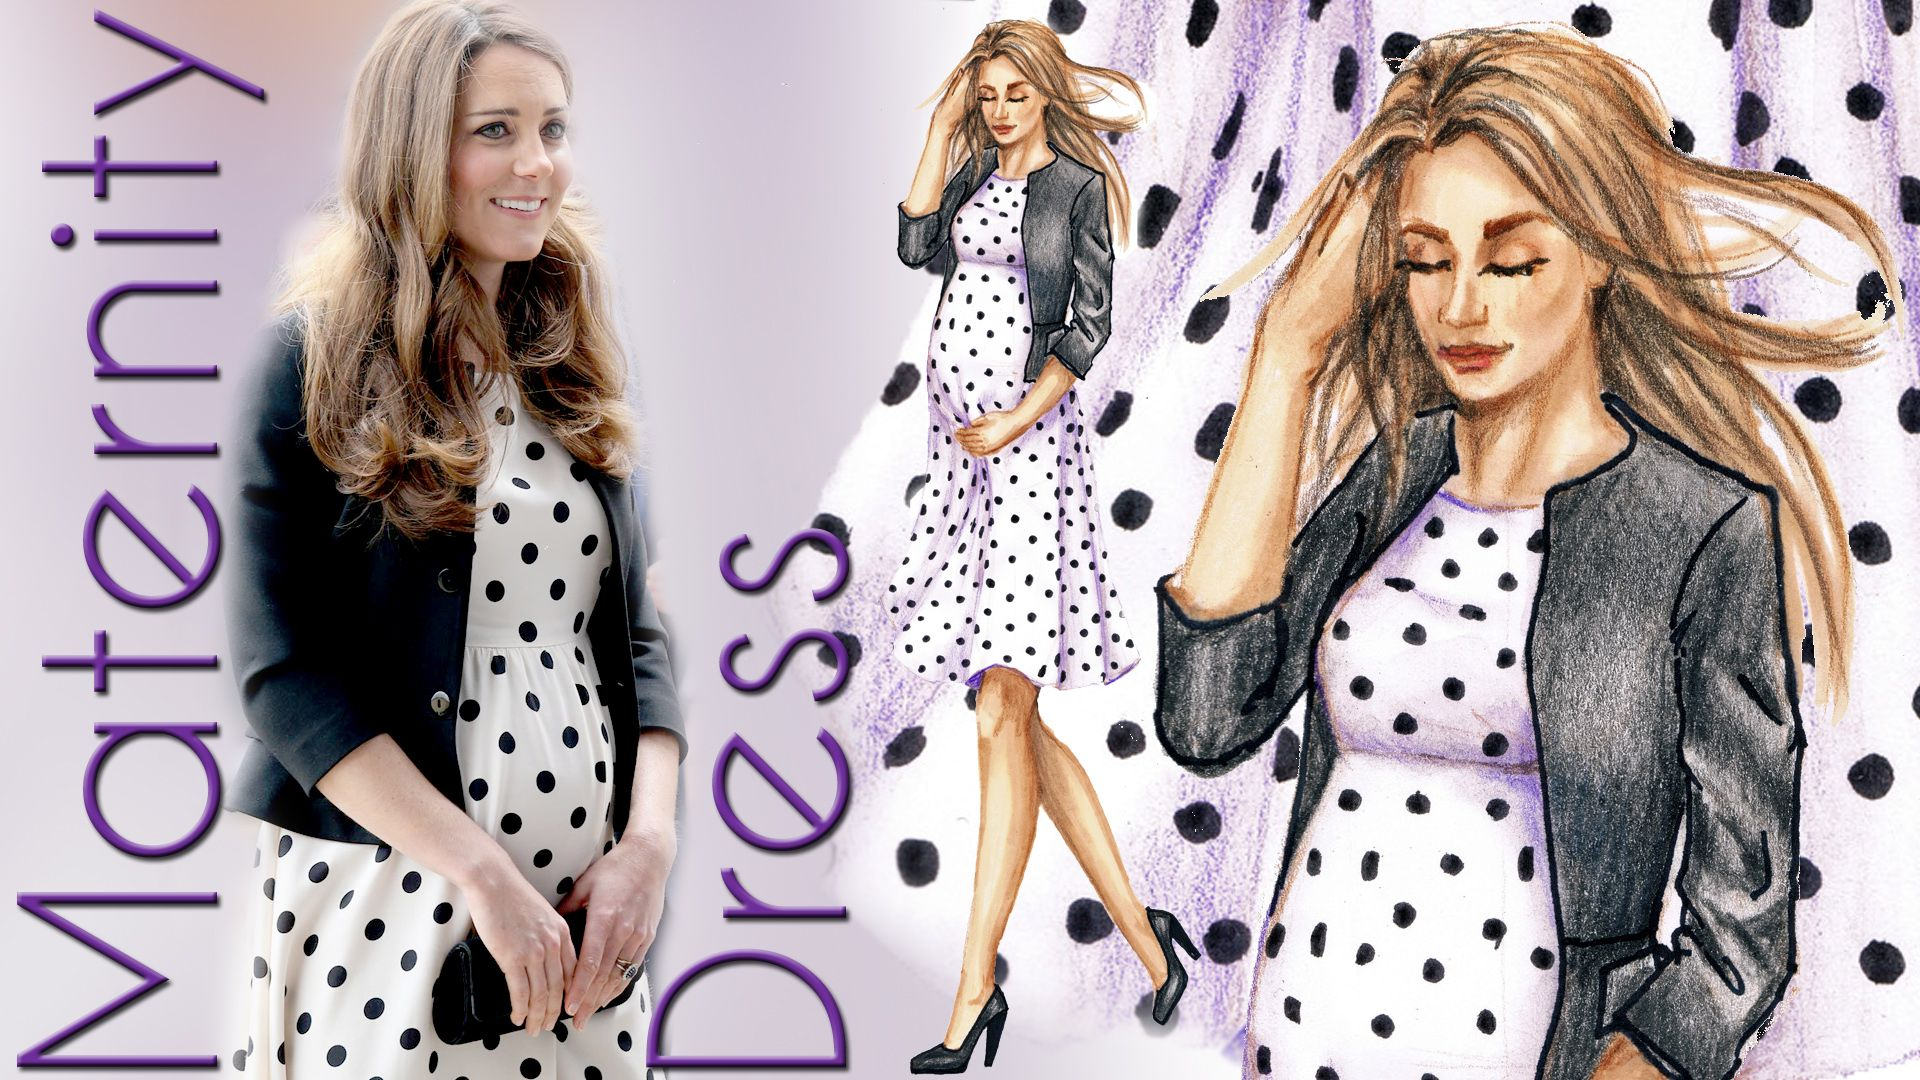 Its a boy kate middleton duchess of cambridge polka dot maternity kate middleton duchess of cambridge polka dot maternity dress fashion design drawing ombrellifo Gallery